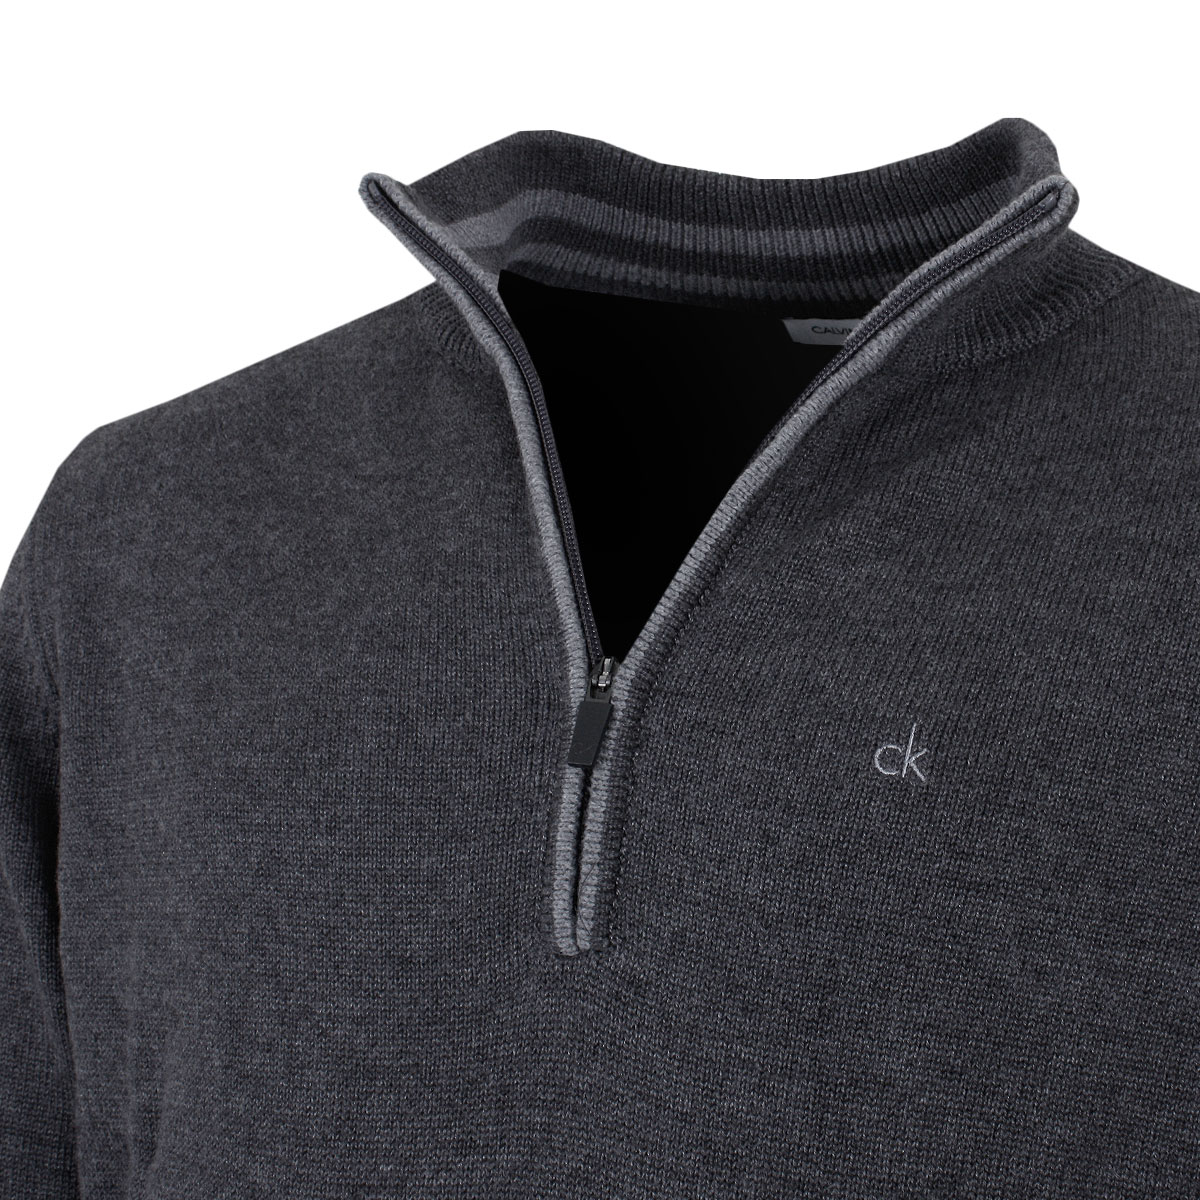 Calvin-Klein-Golf-Mens-2019-Chunky-Cotton-1-2-Zip-Golf-Top-Sweater-28-OFF-RRP thumbnail 22